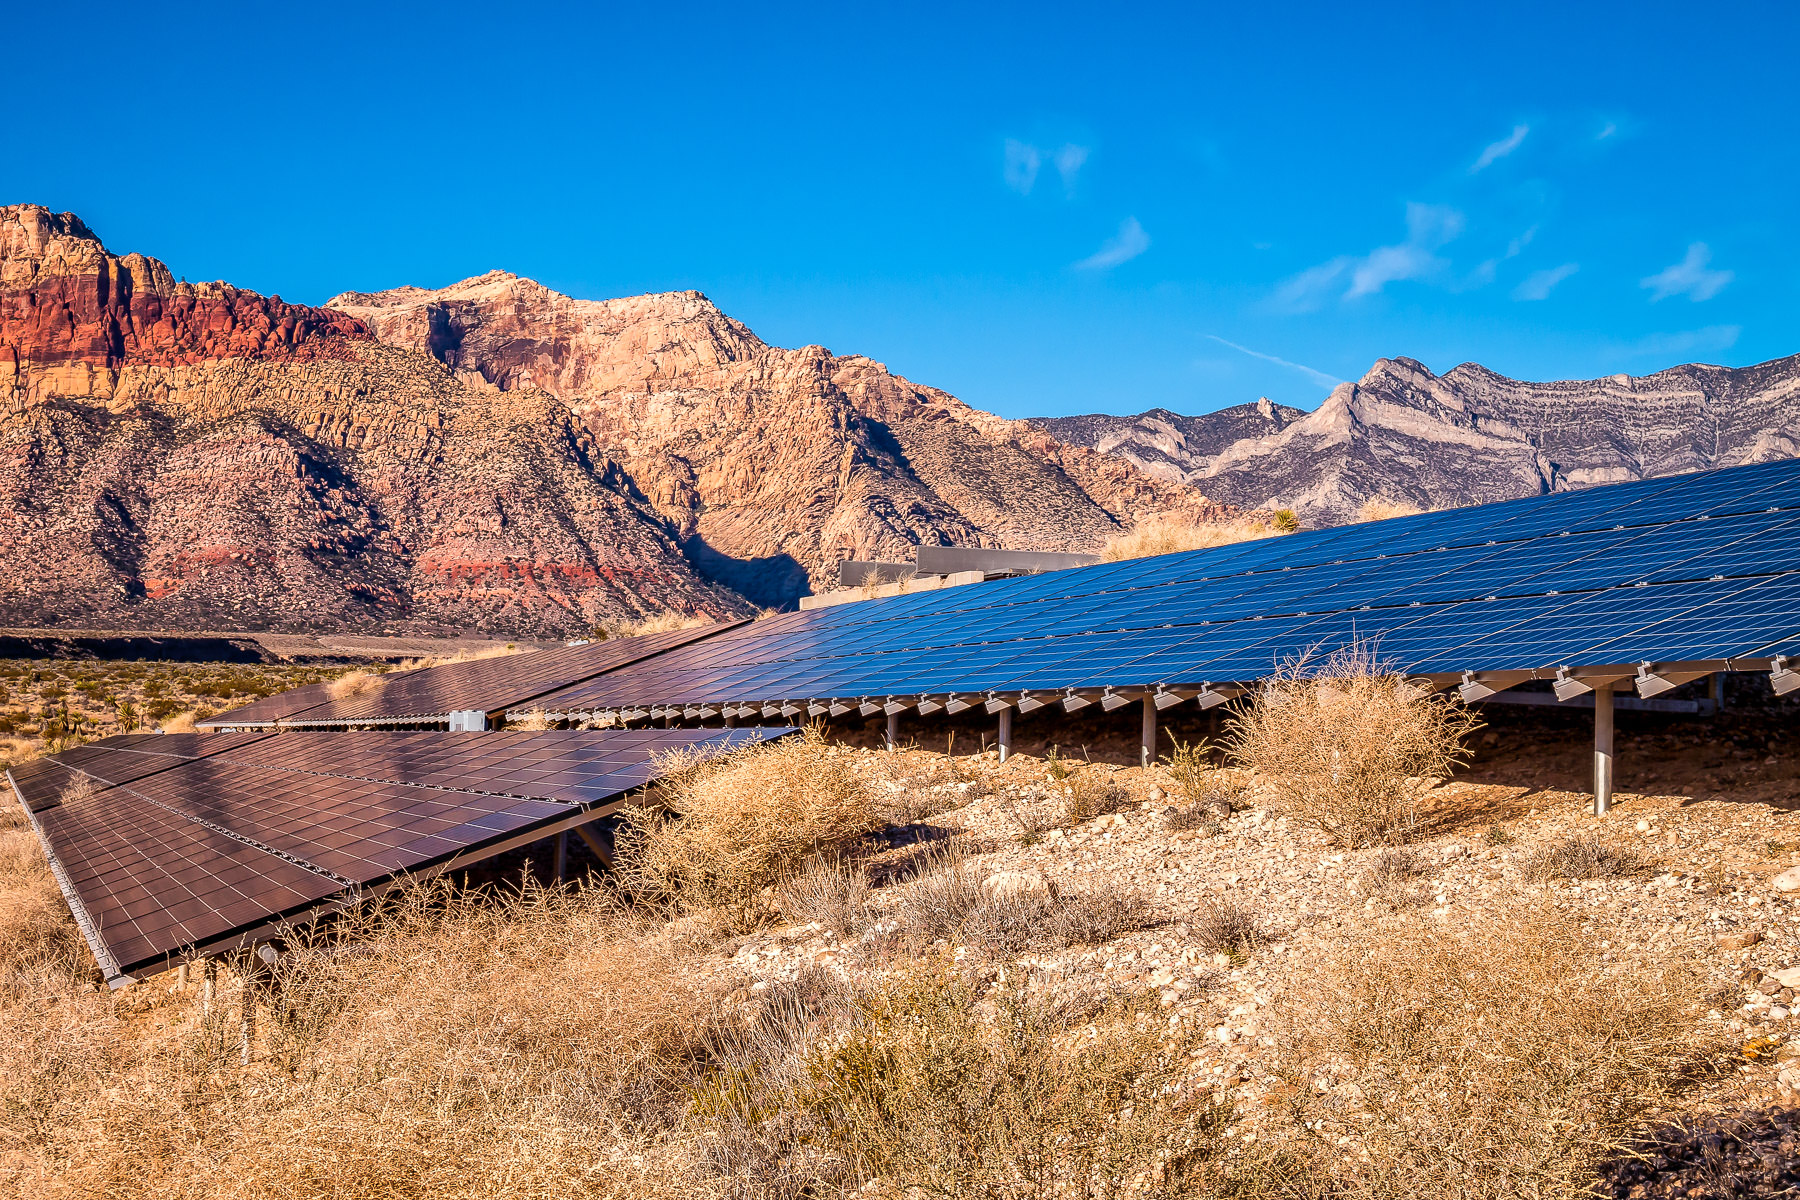 Solar panels provide electricity to the Red Rock Canyon Visitors Center, Nevada.